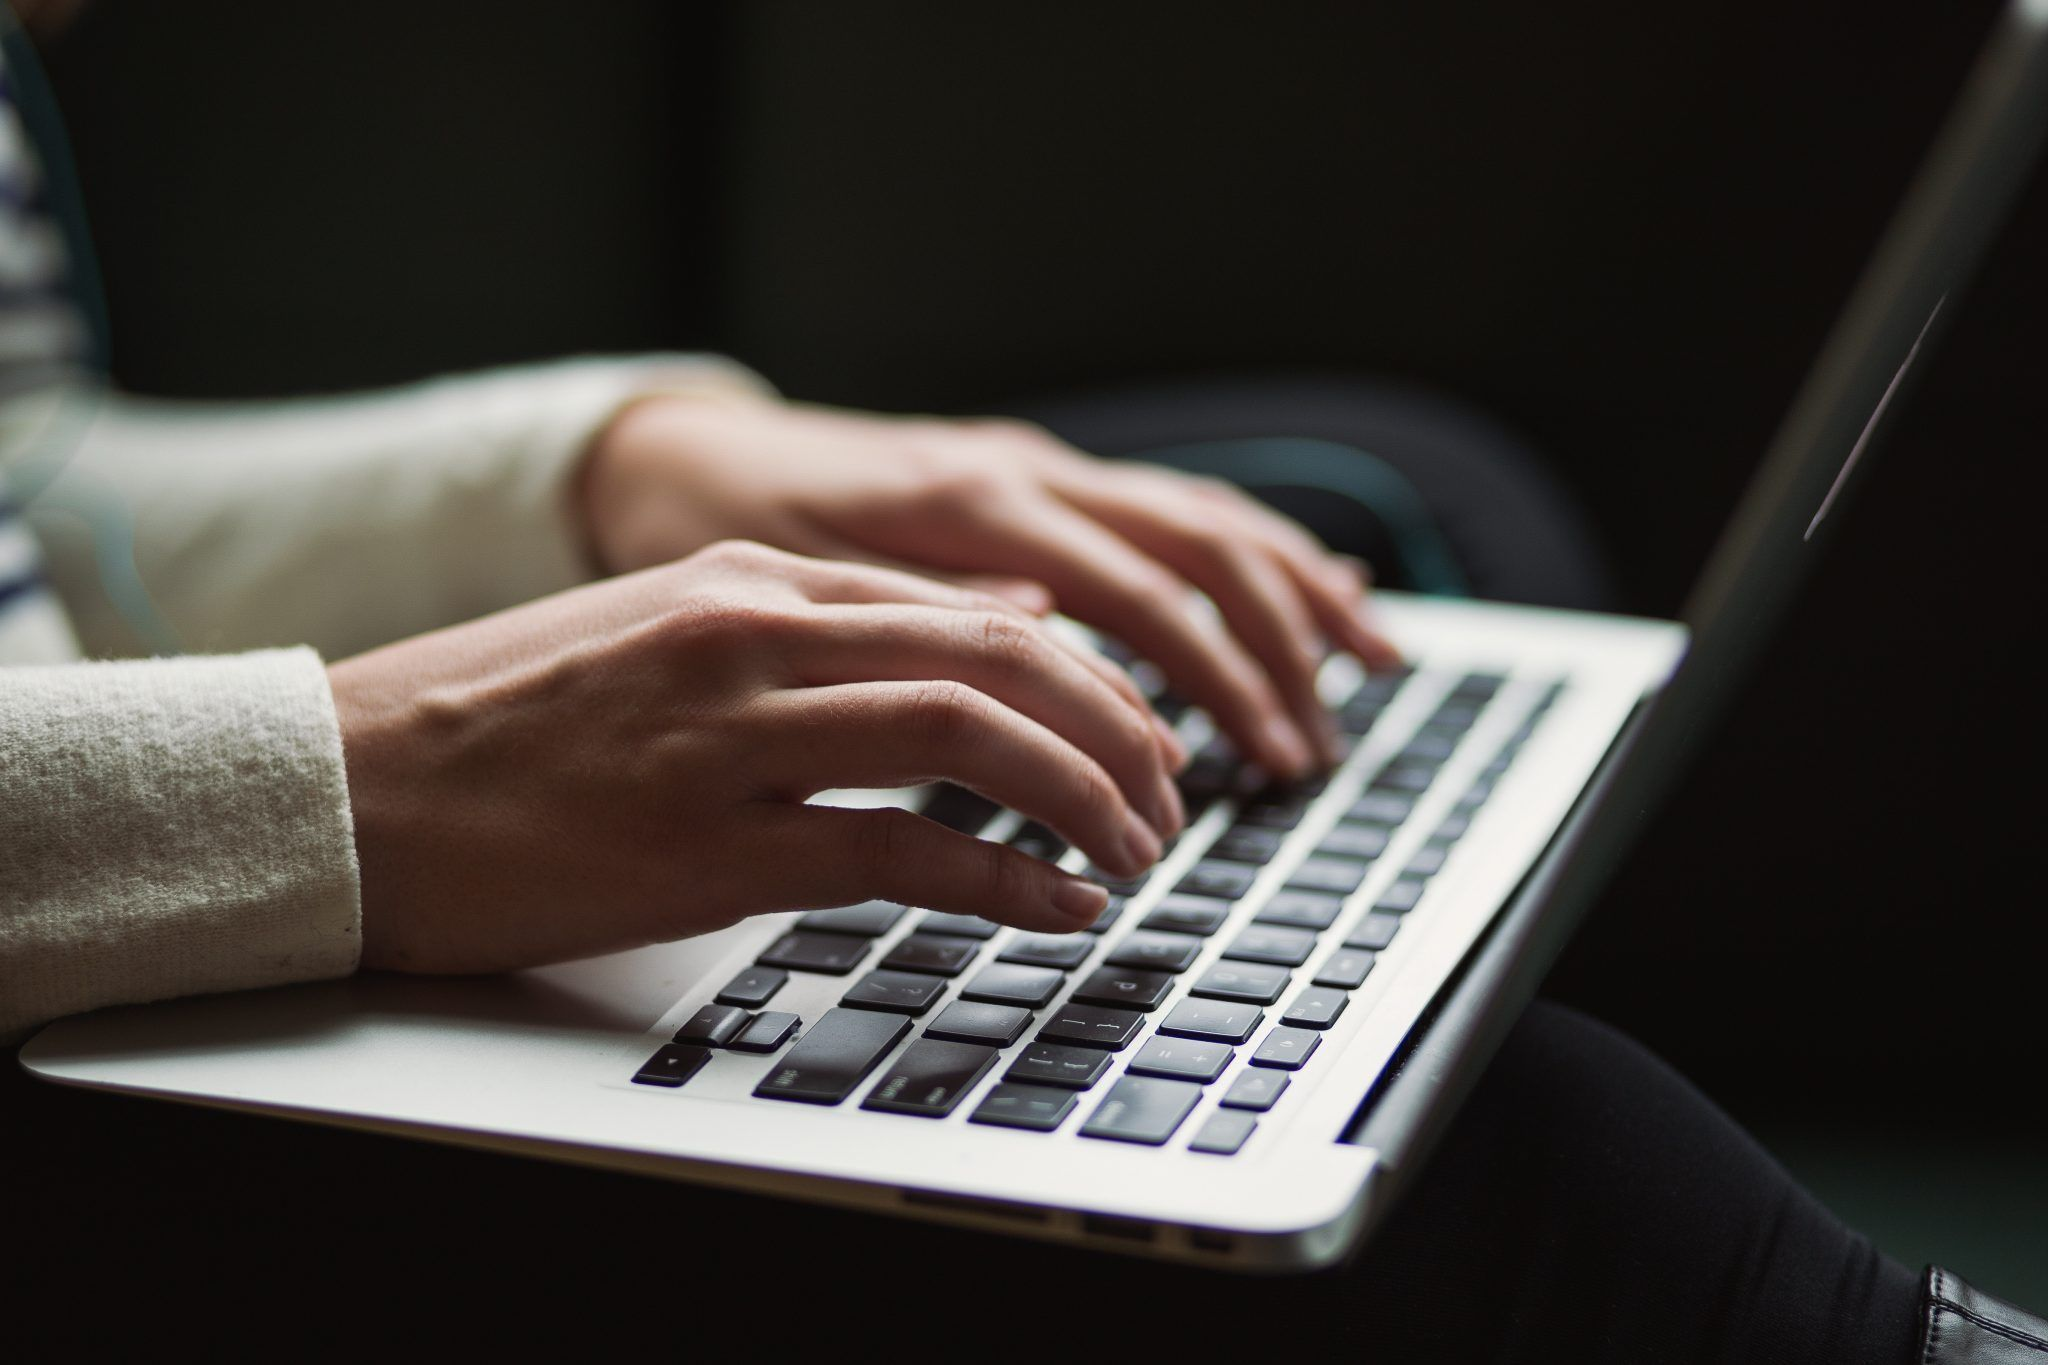 14 Resources to Improve Your Writing and Editing Skills